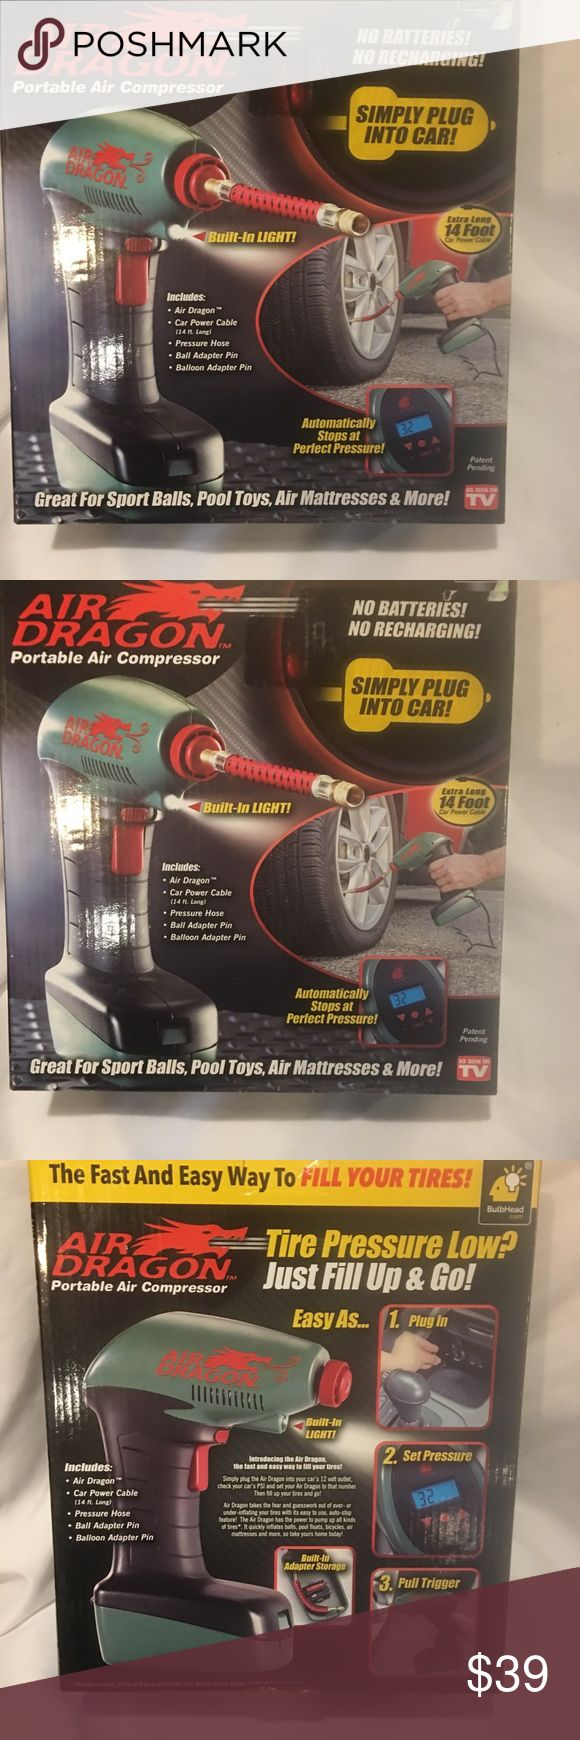 As Seen on TV Air Dragon Portable Air Compressor As Seen on TV Air Dragon Portable Air Compressor Emergency Automatic Stop Light bulbhead Other